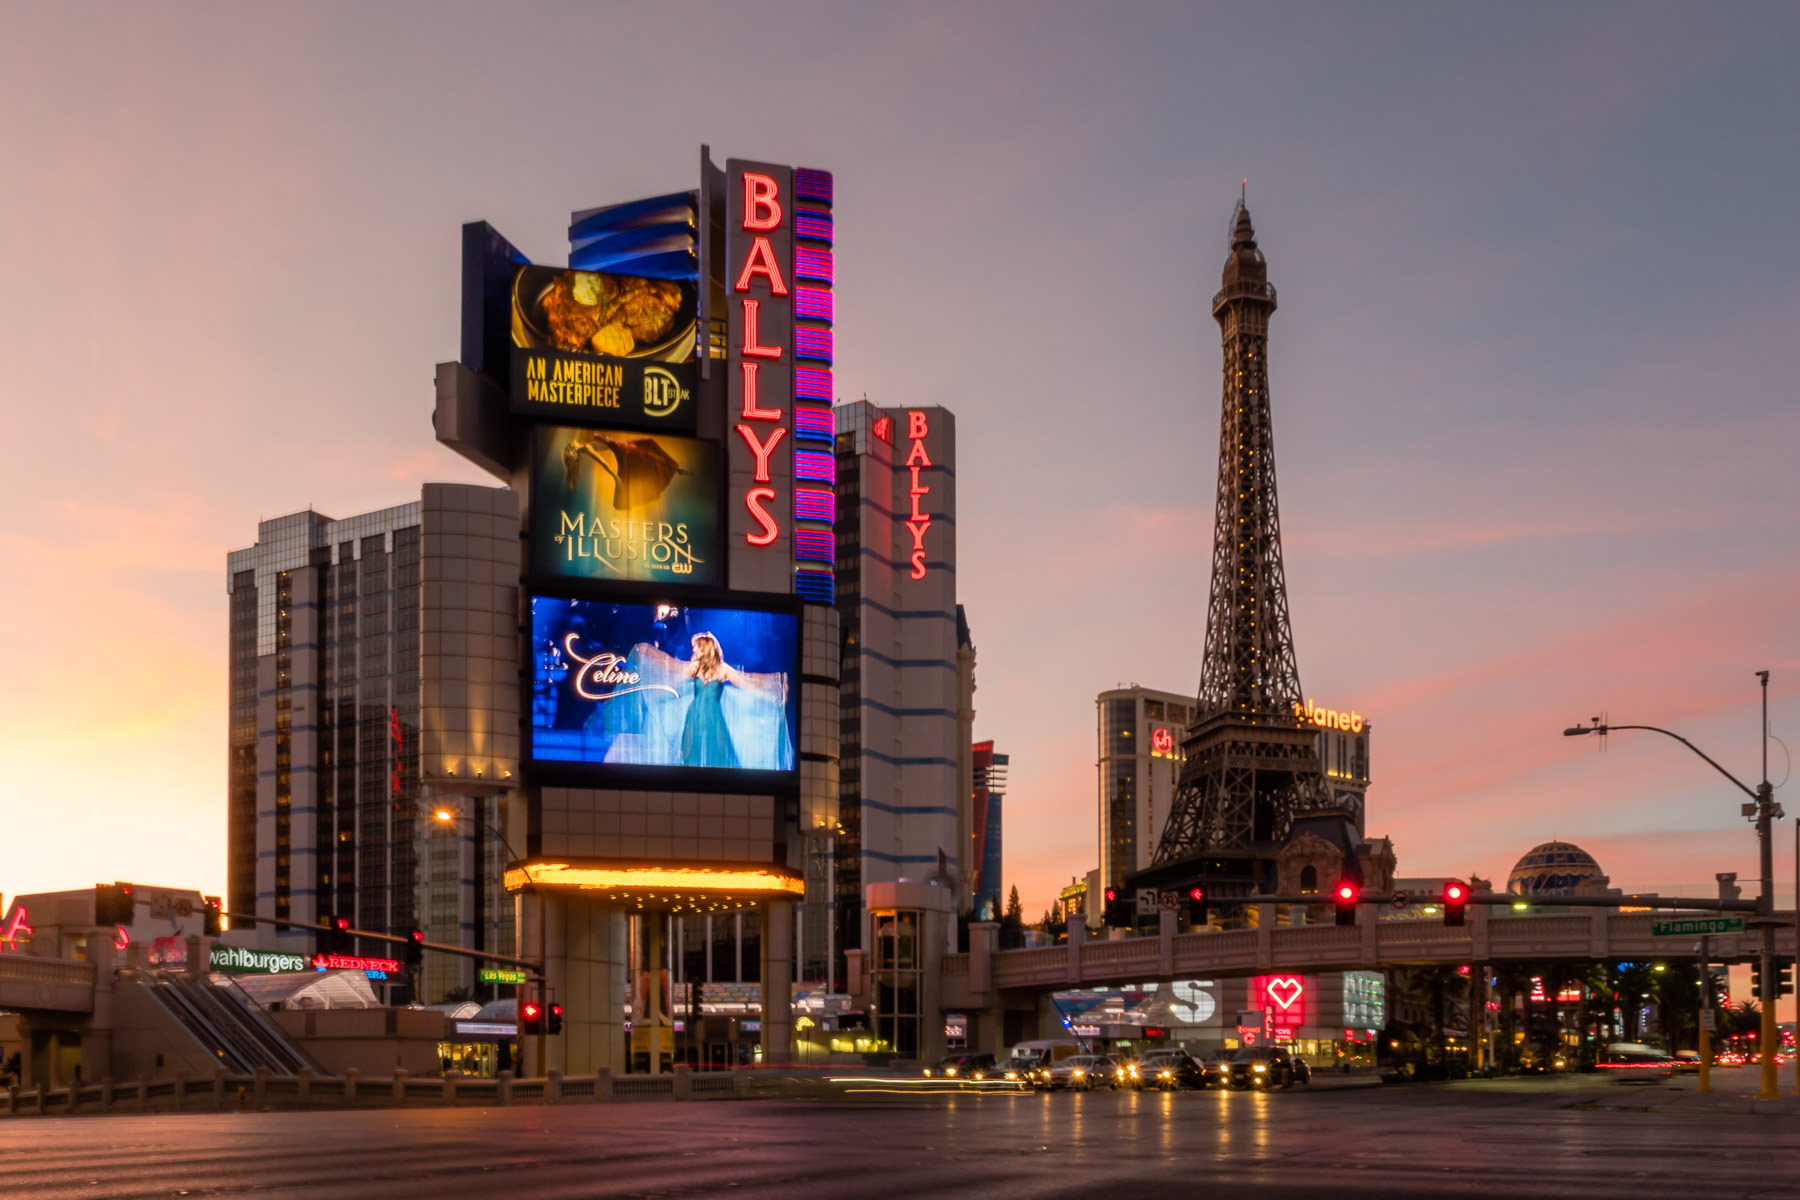 The sun rises on Ballys, Paris Las Vegas, Planet Hollywood and the rest of the Las Vegas Strip.